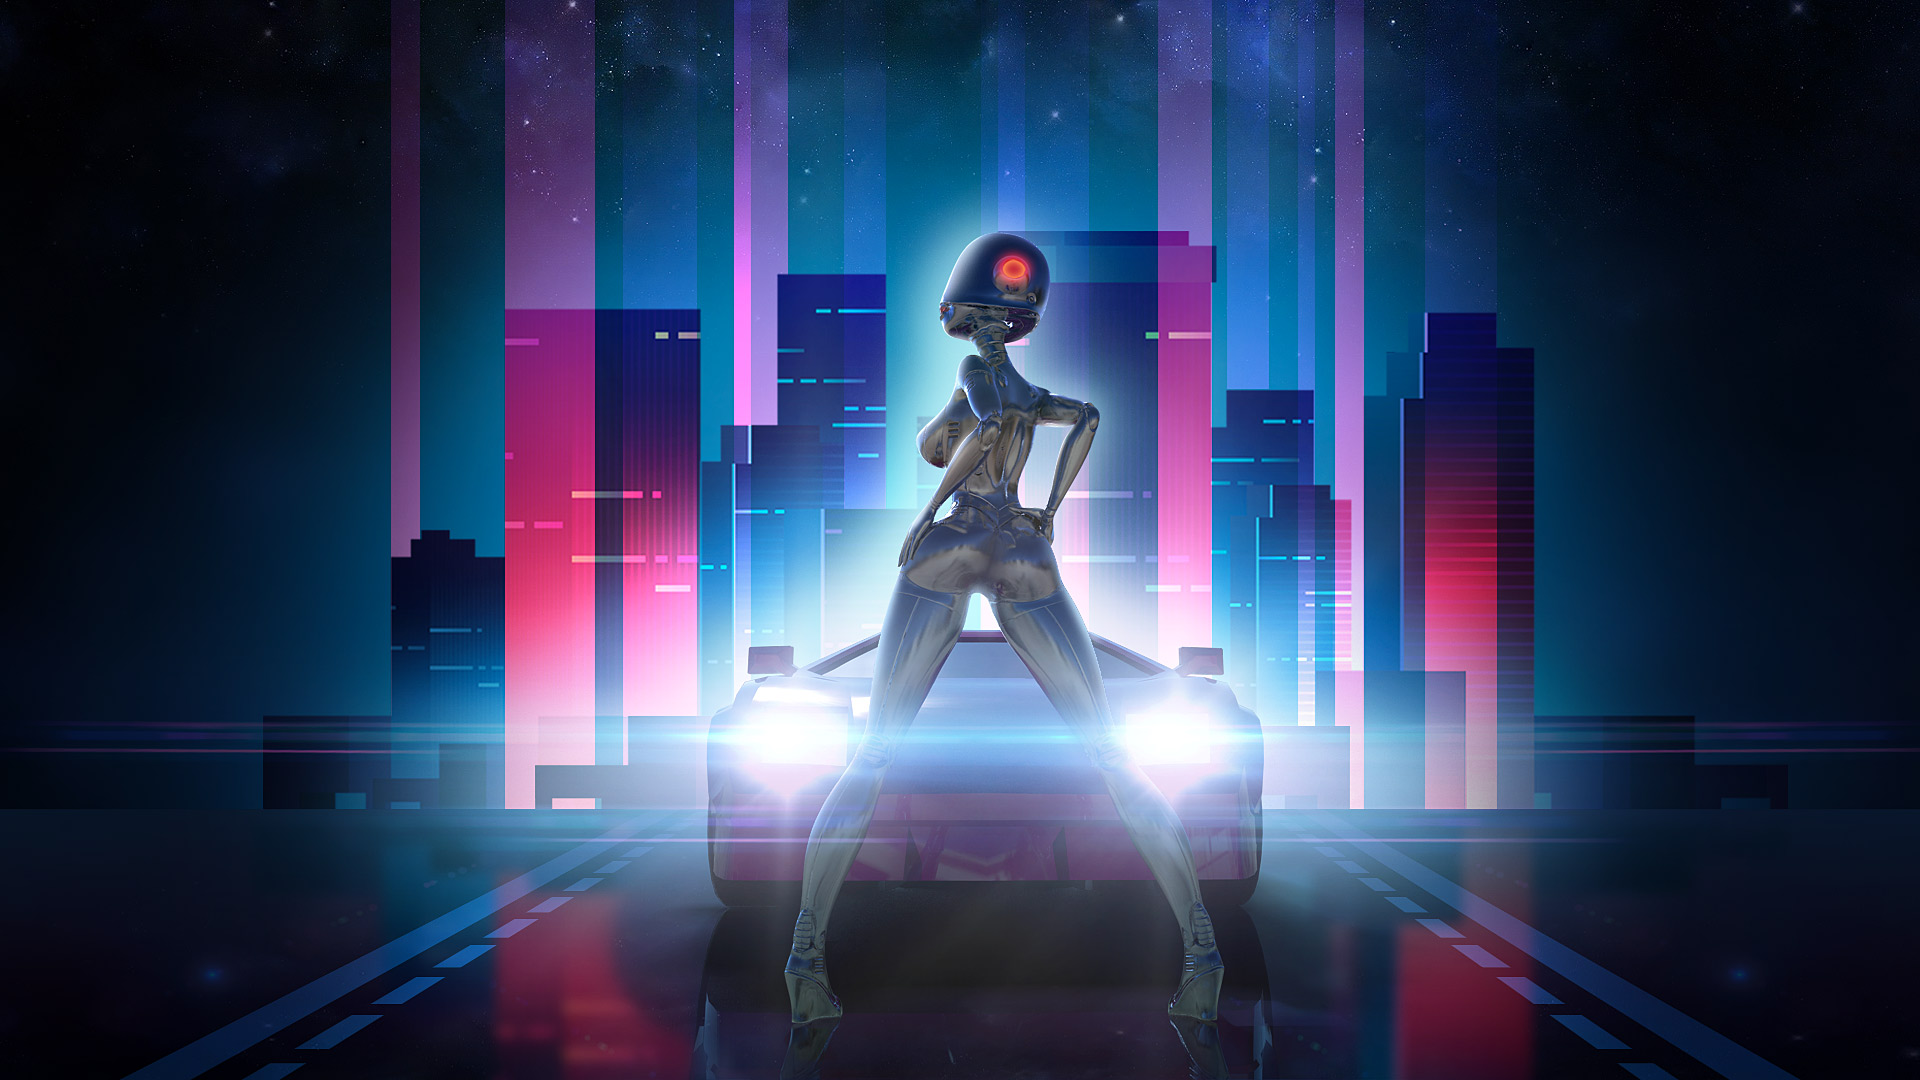 Chill Wave Car Wallpaper Neon Drive Retro Synthwave